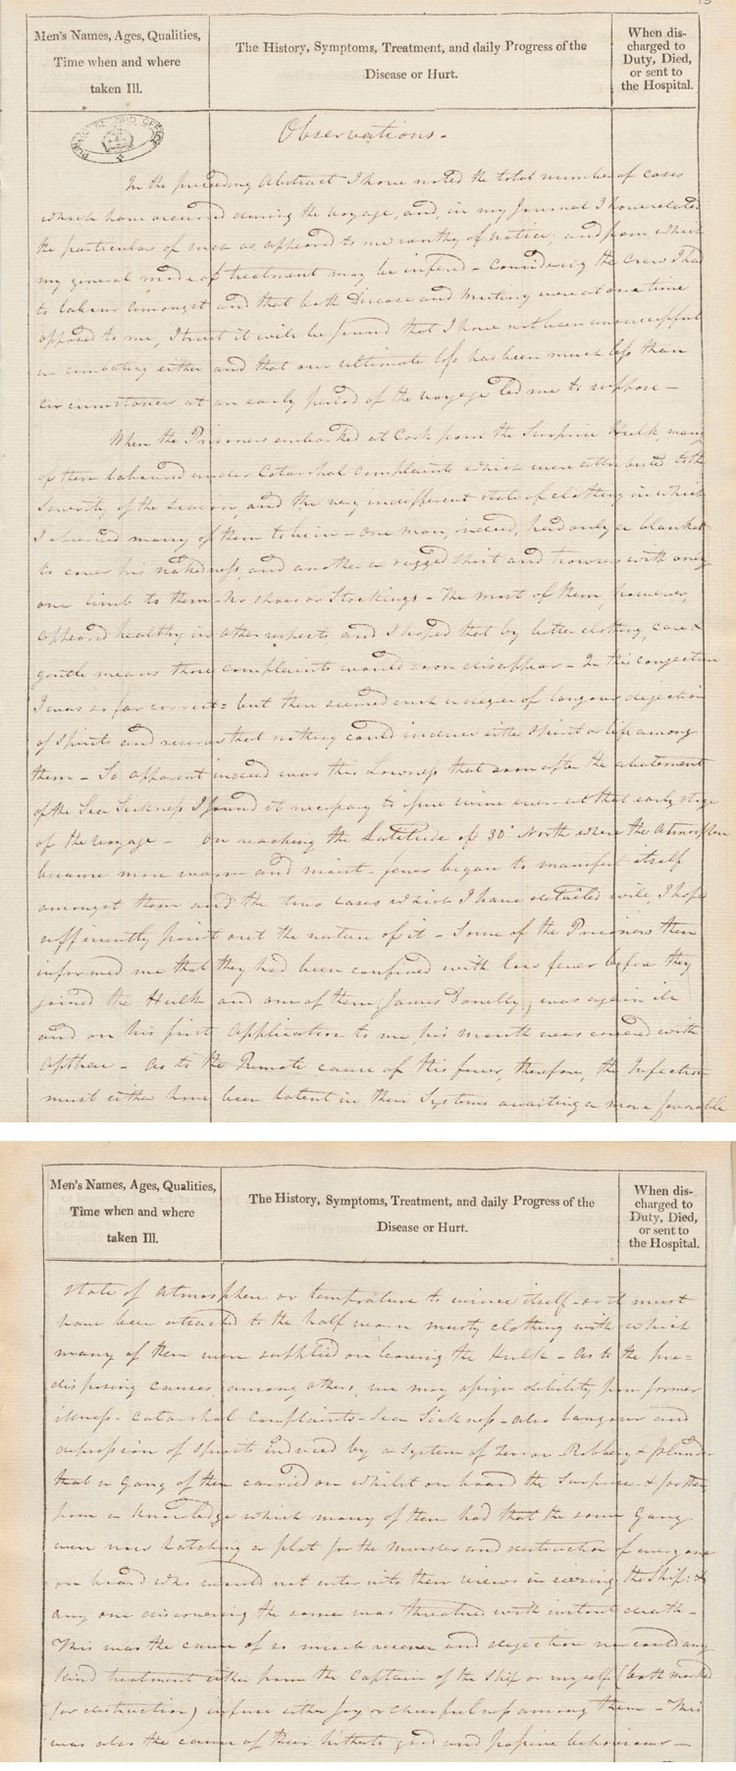 Extract from the medical and surgical journal of the convict ship Isabella, 4 July to 24 December 1823, by Mr William Rae, Surgeon (ADM 101/36/3) Transcrip